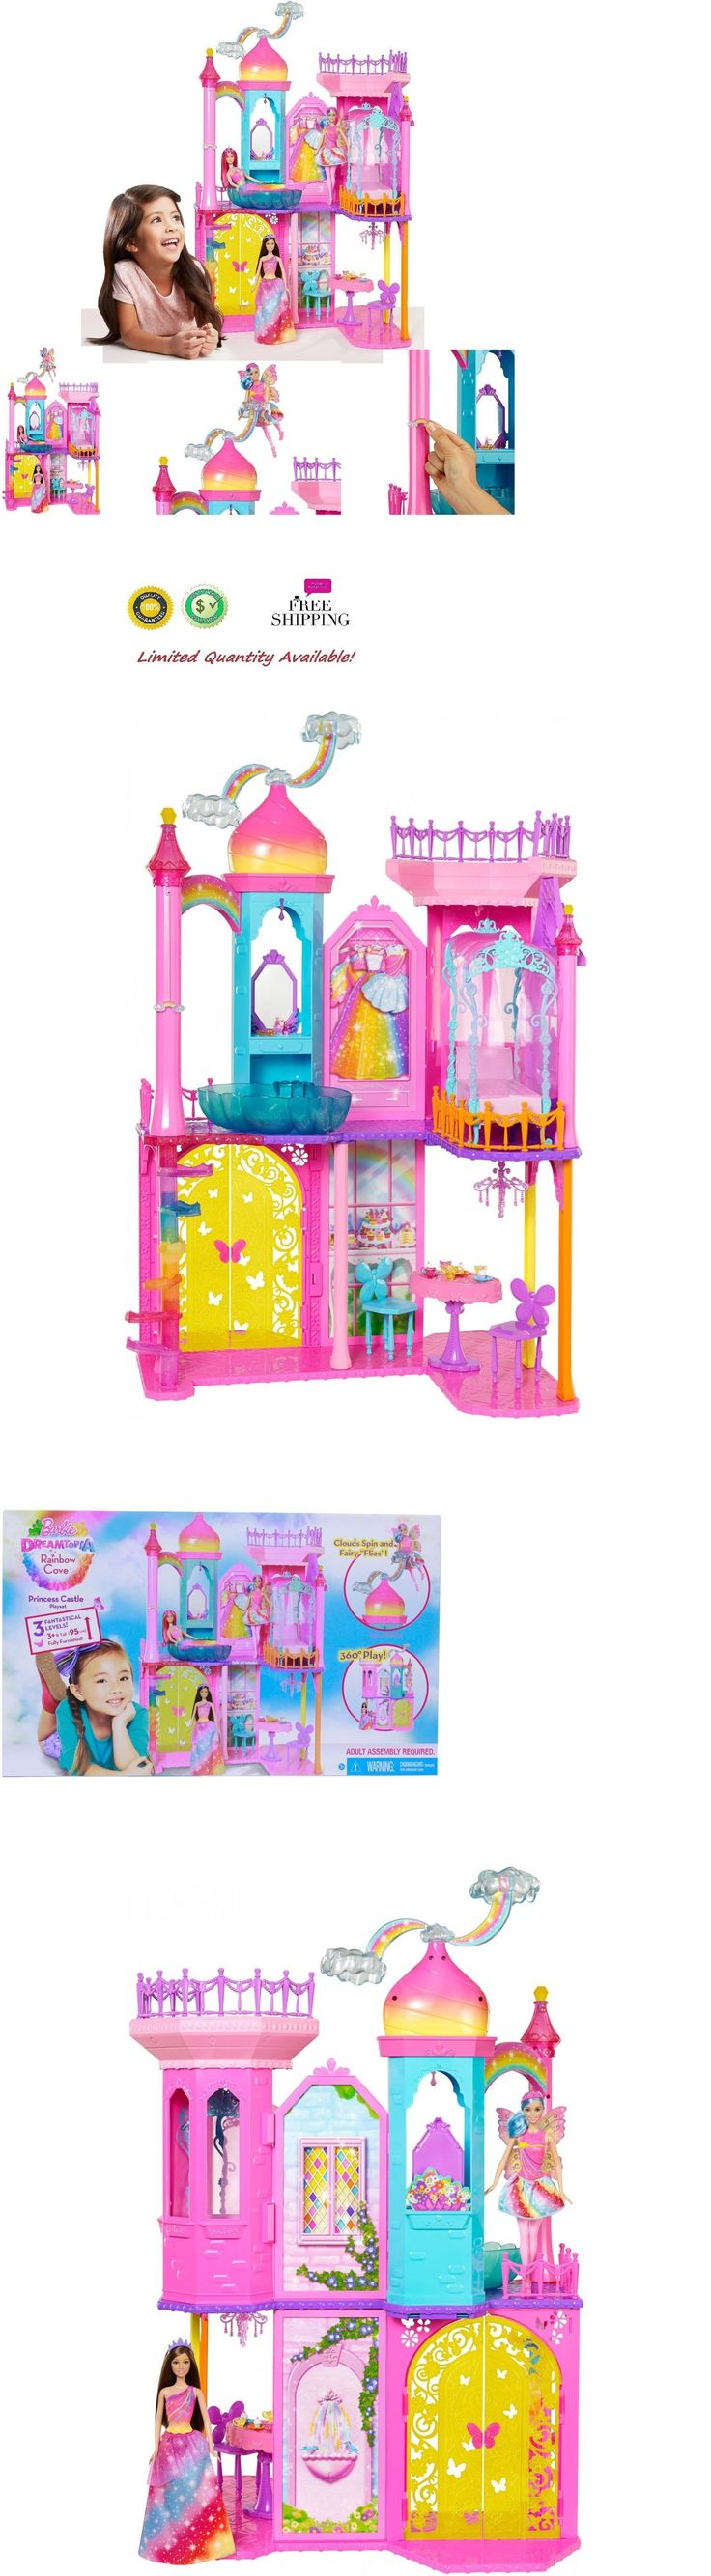 Other Classic Toys 19027: Girls Barbie Dream House Rainbow Princess Cove Castle Playset + Accessories Fun -> BUY IT NOW ONLY: $76.35 on eBay!